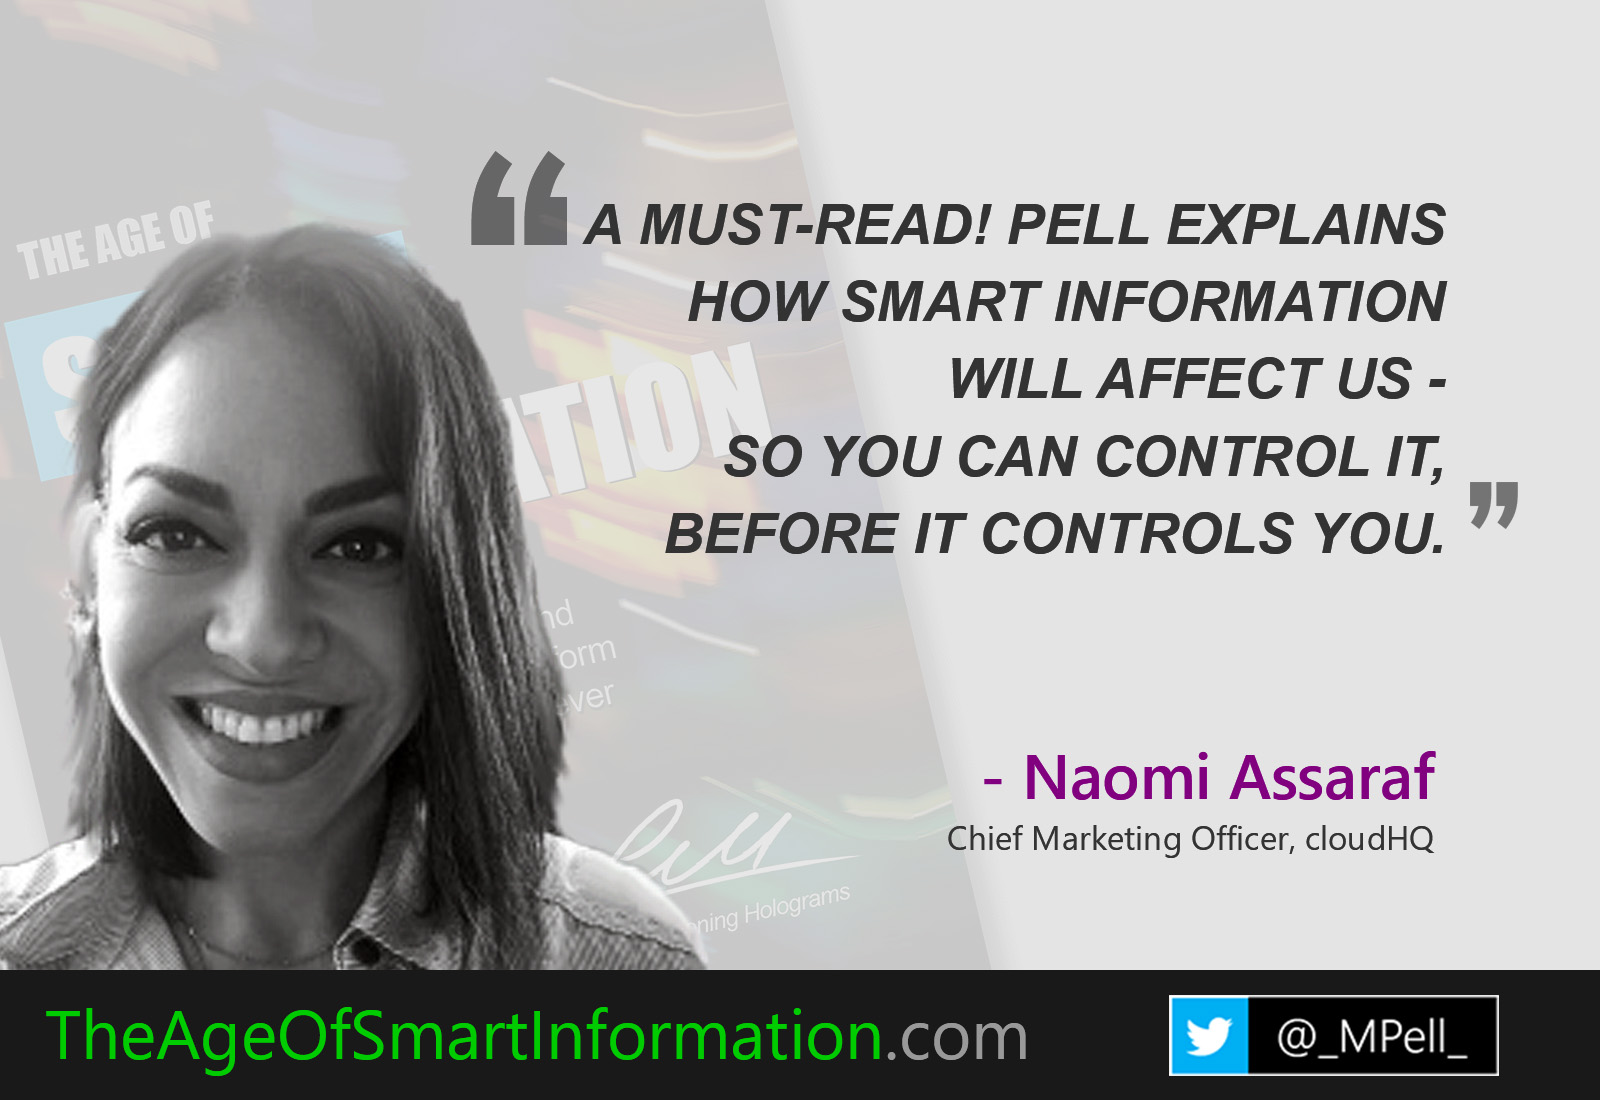 MPell_TheAgeOfSmartInformation_Naomi_promo_02